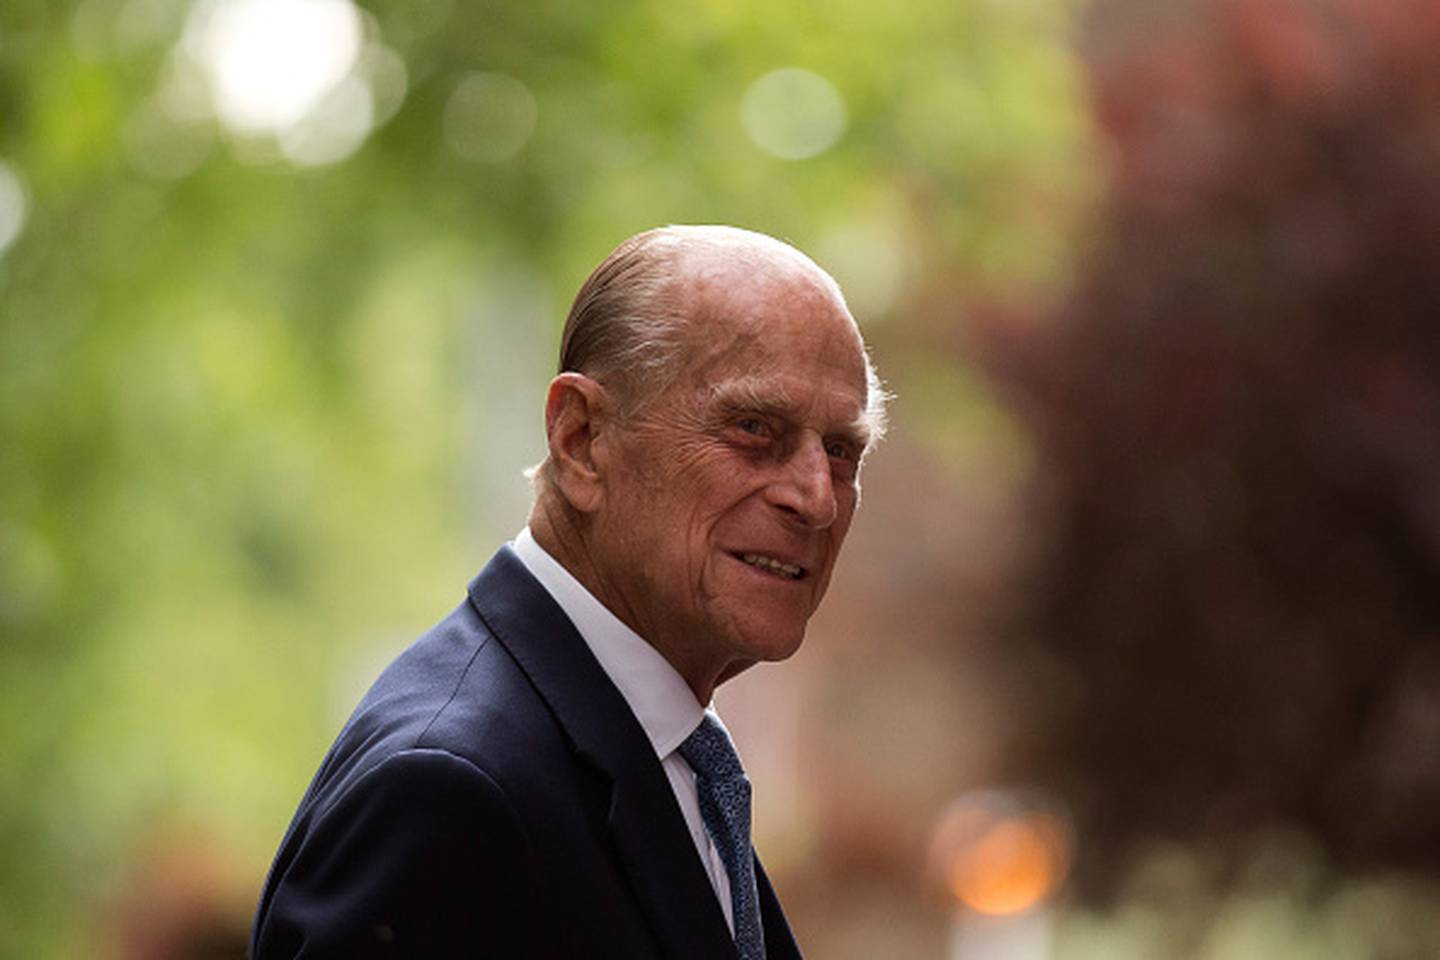 Prince Philip, who died aged 99, is entitled to a full state funeral. Photo / Getty Images